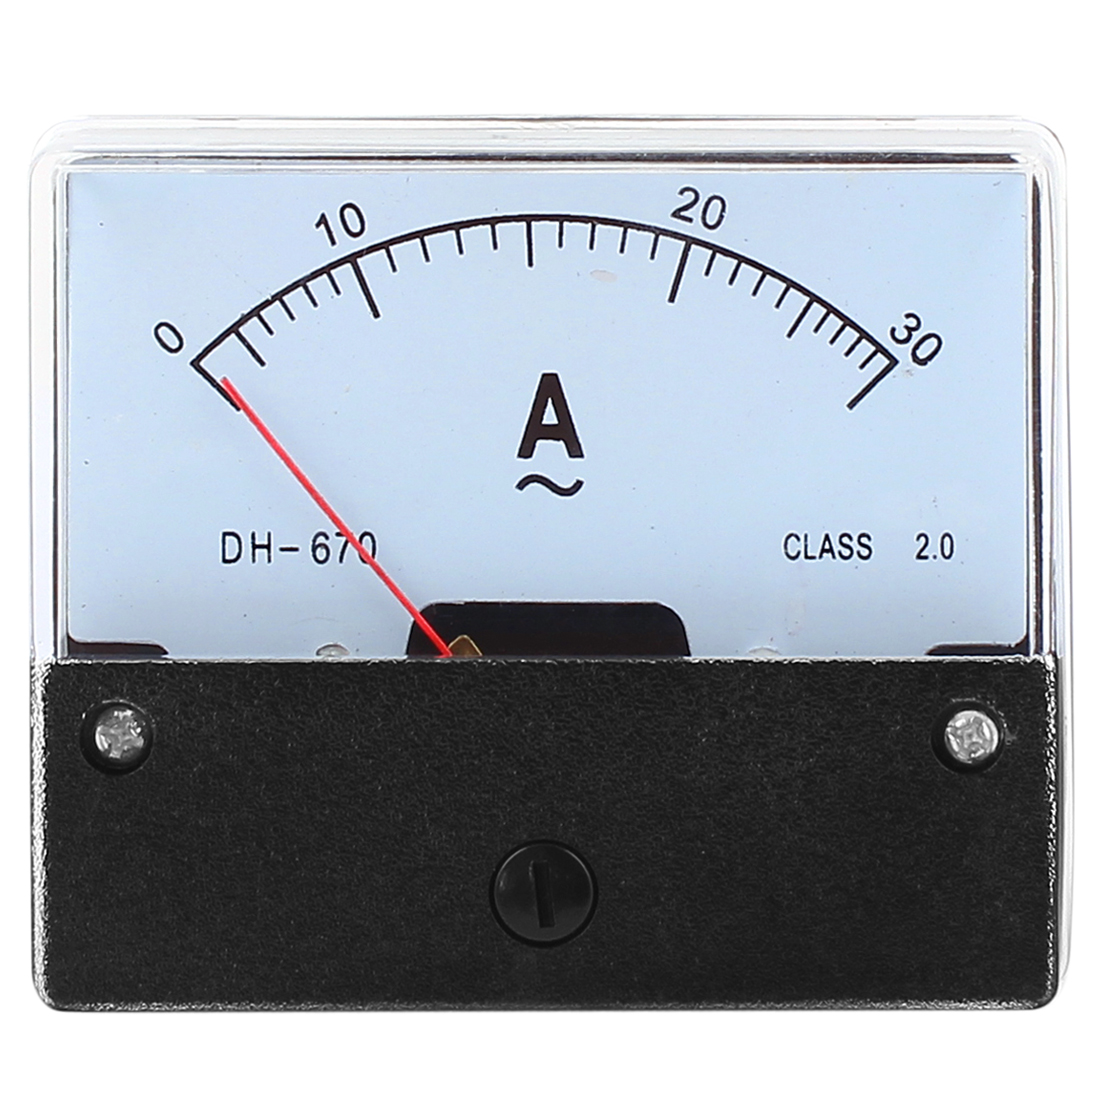 AC 0-30A Rectangle Panel Current Analog Ammeter Meter Gauge DH670